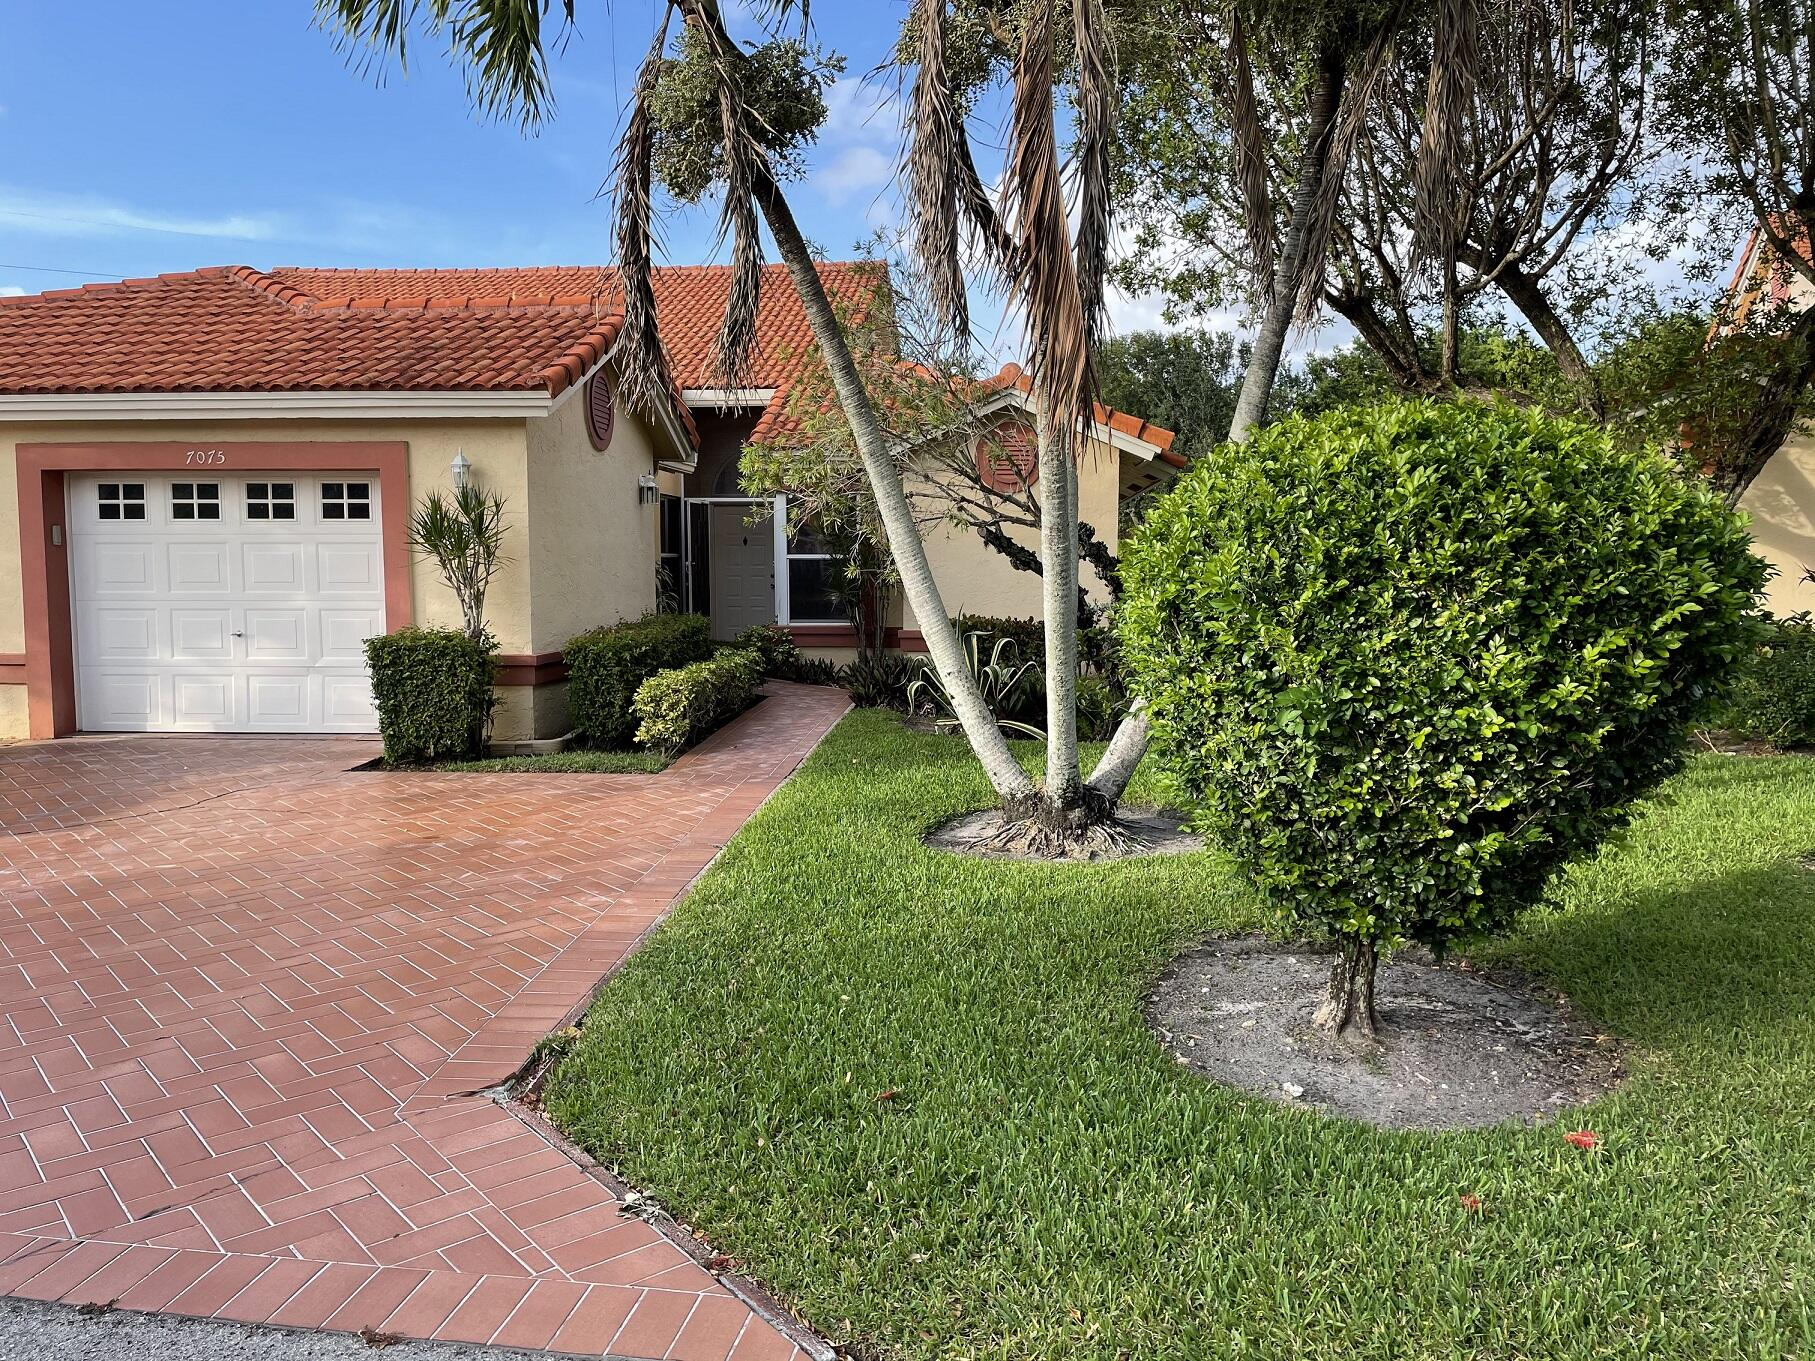 7075  Summer Tree Drive  For Sale 10718182, FL